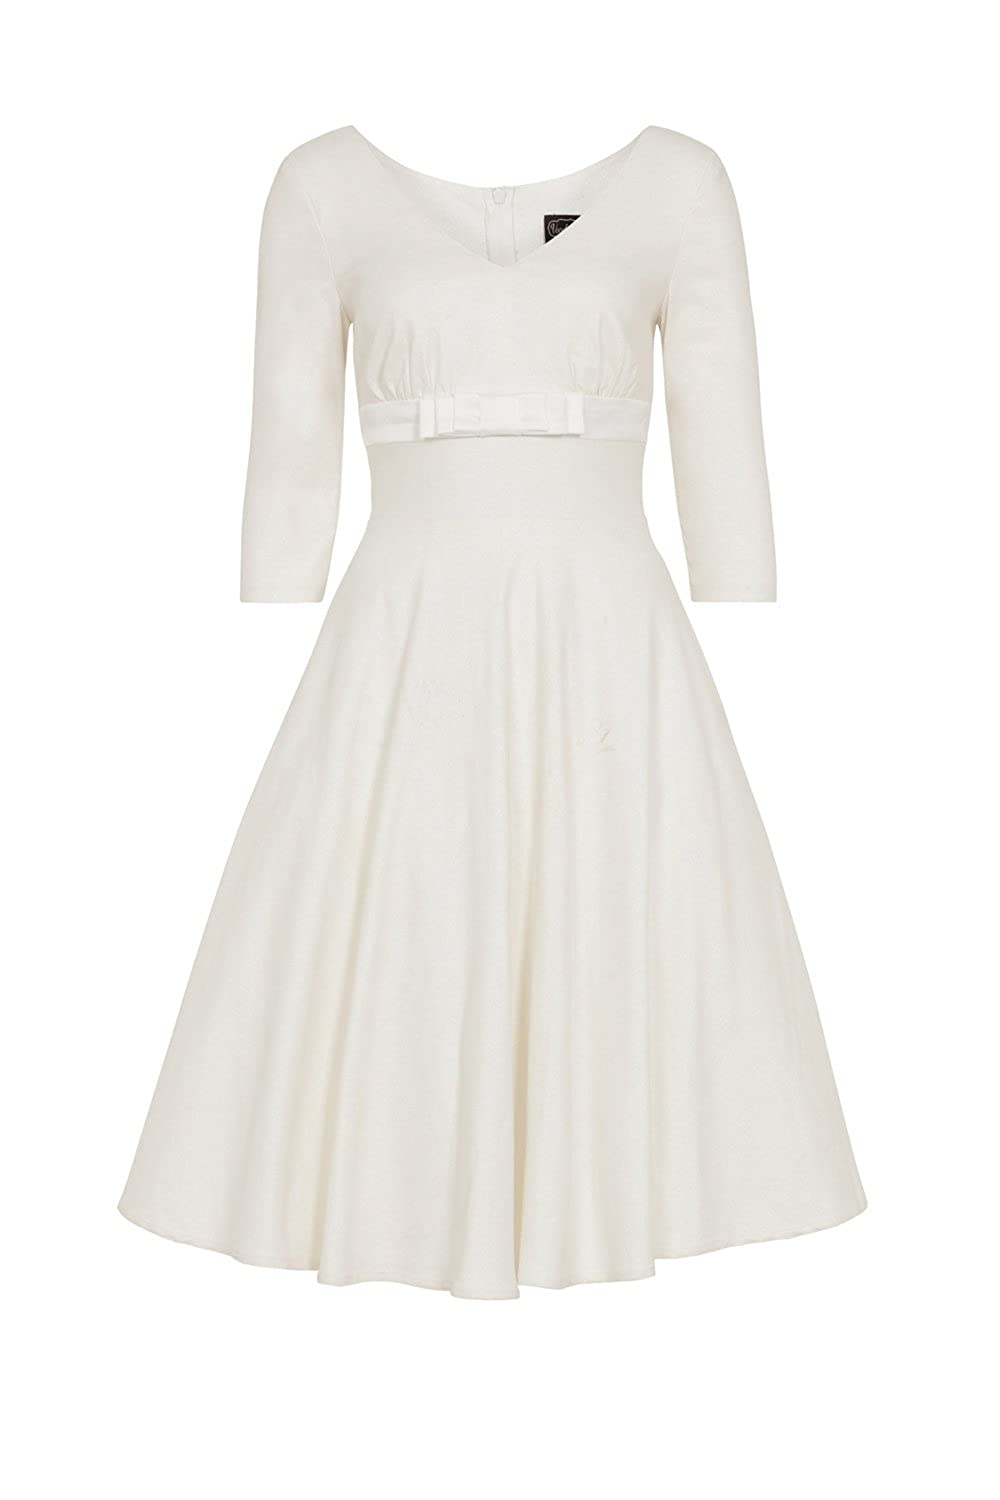 50s Wedding Dress, 1950s Style Wedding Dresses, Rockabilly Weddings Voodoo Vixen Dorothy Bridal Plus Size Dress £62.50 AT vintagedancer.com